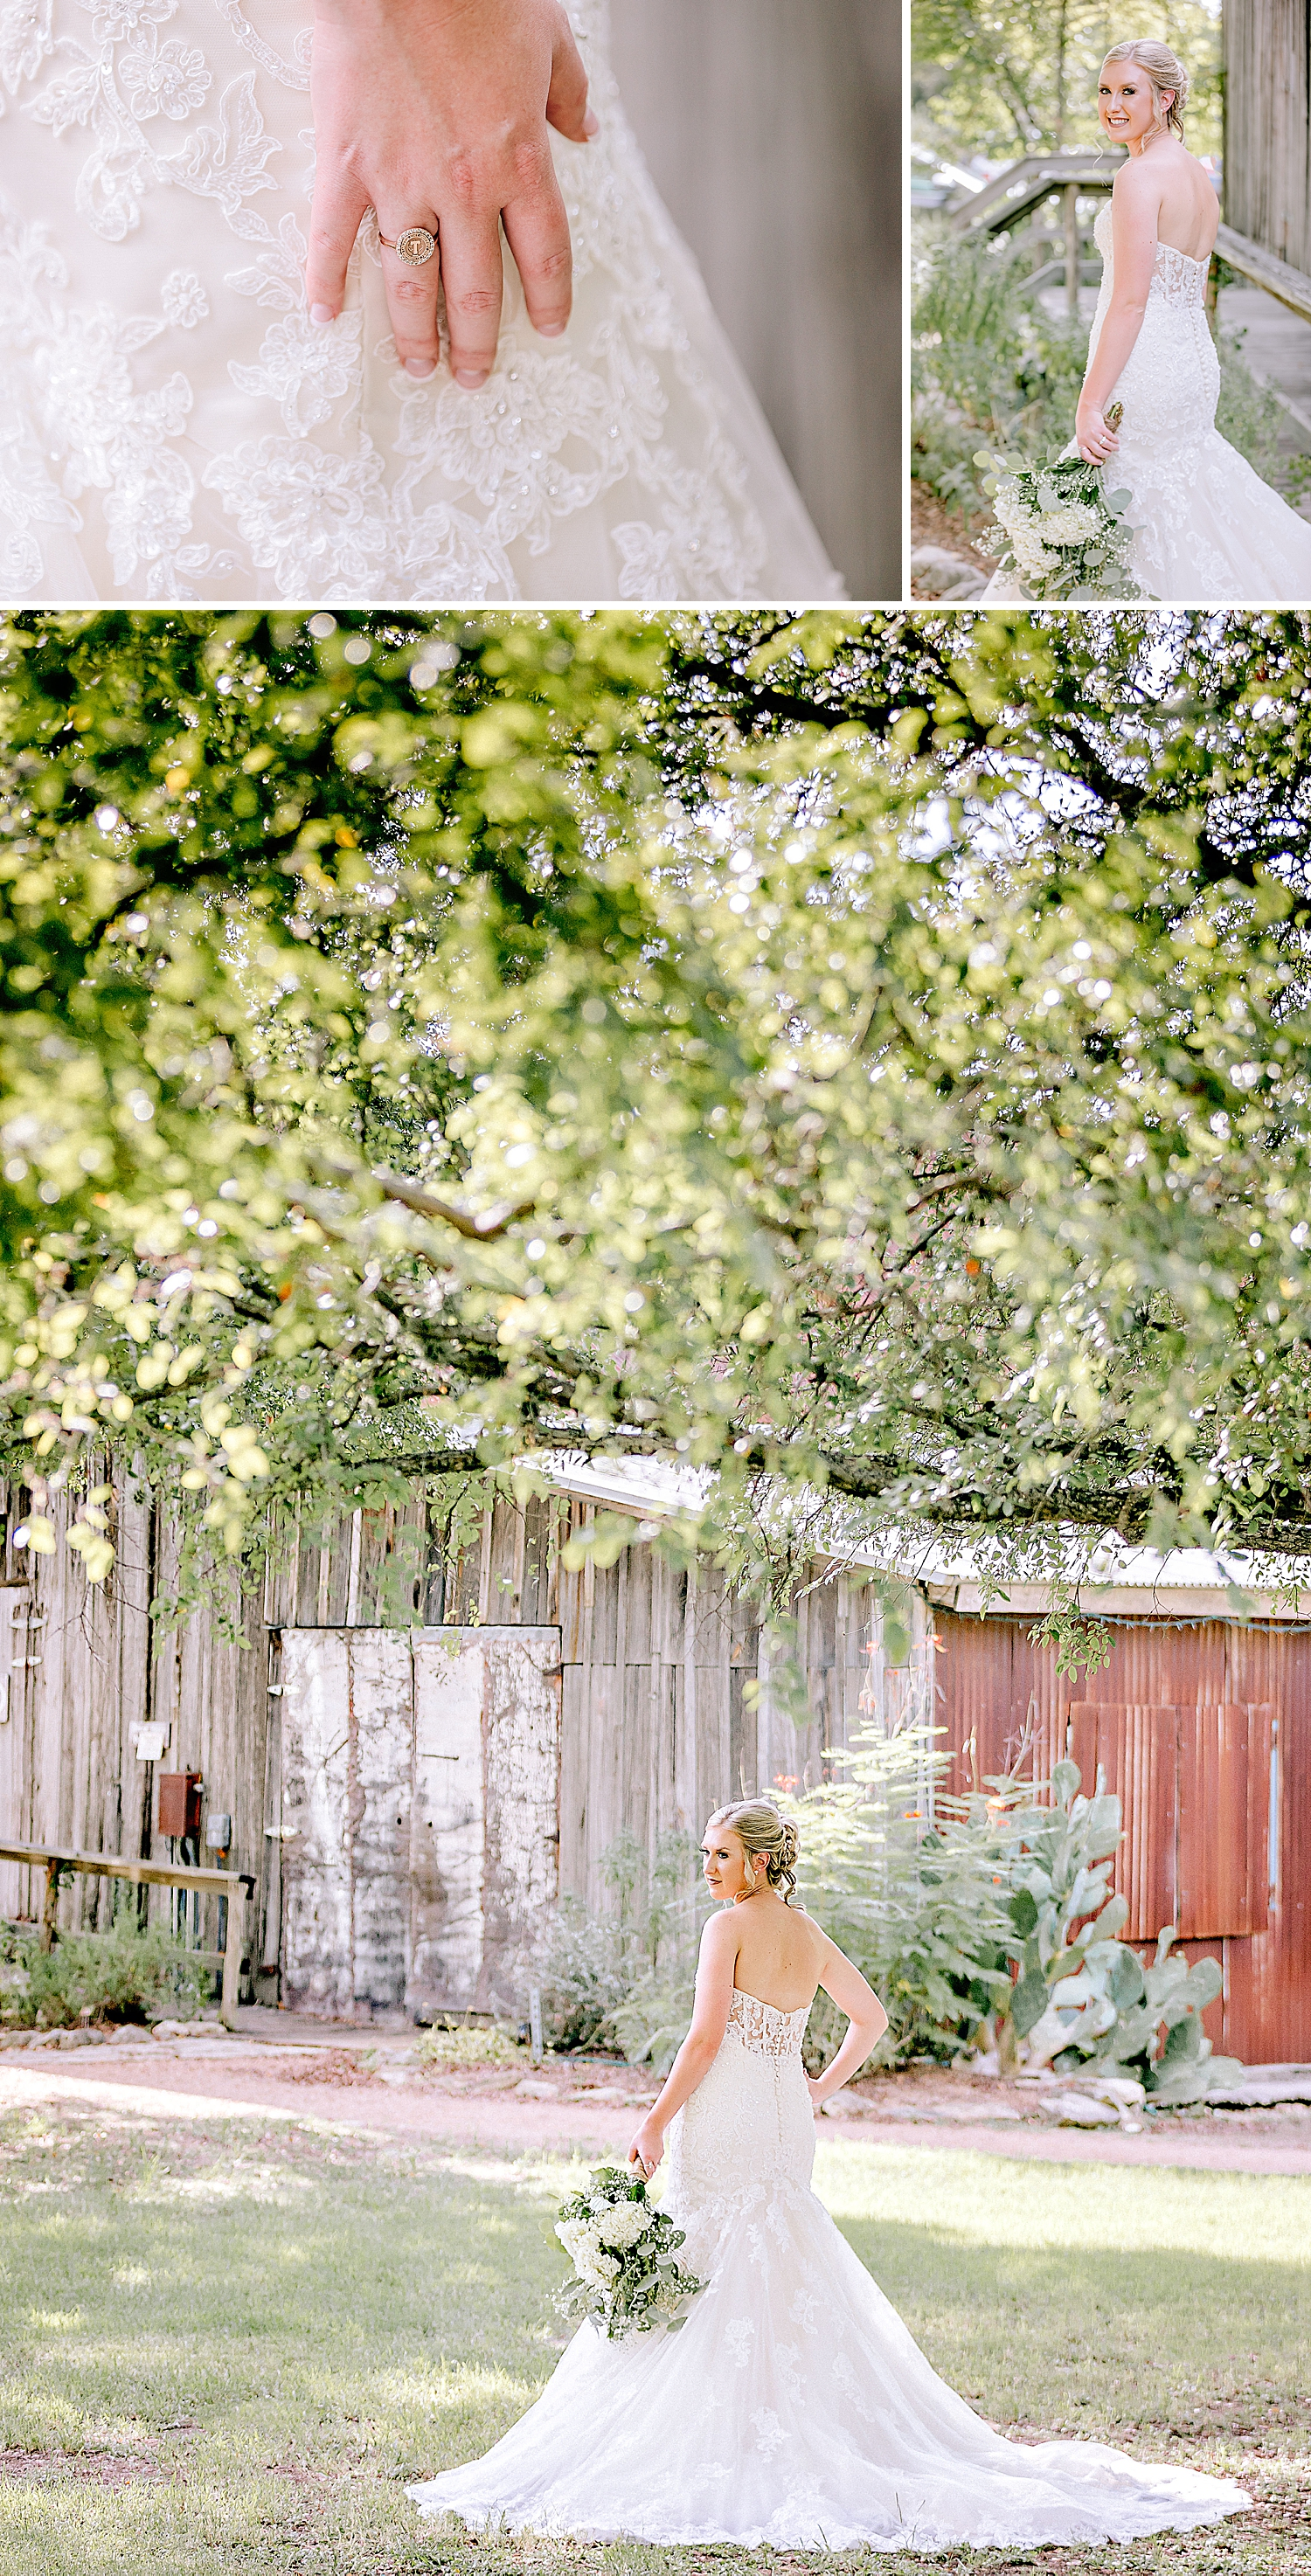 Carly-Barton-Photography-Bridal-Photos-Gruene-Rustic-New-Braunfels-Wedding-Photographer_0013.jpg